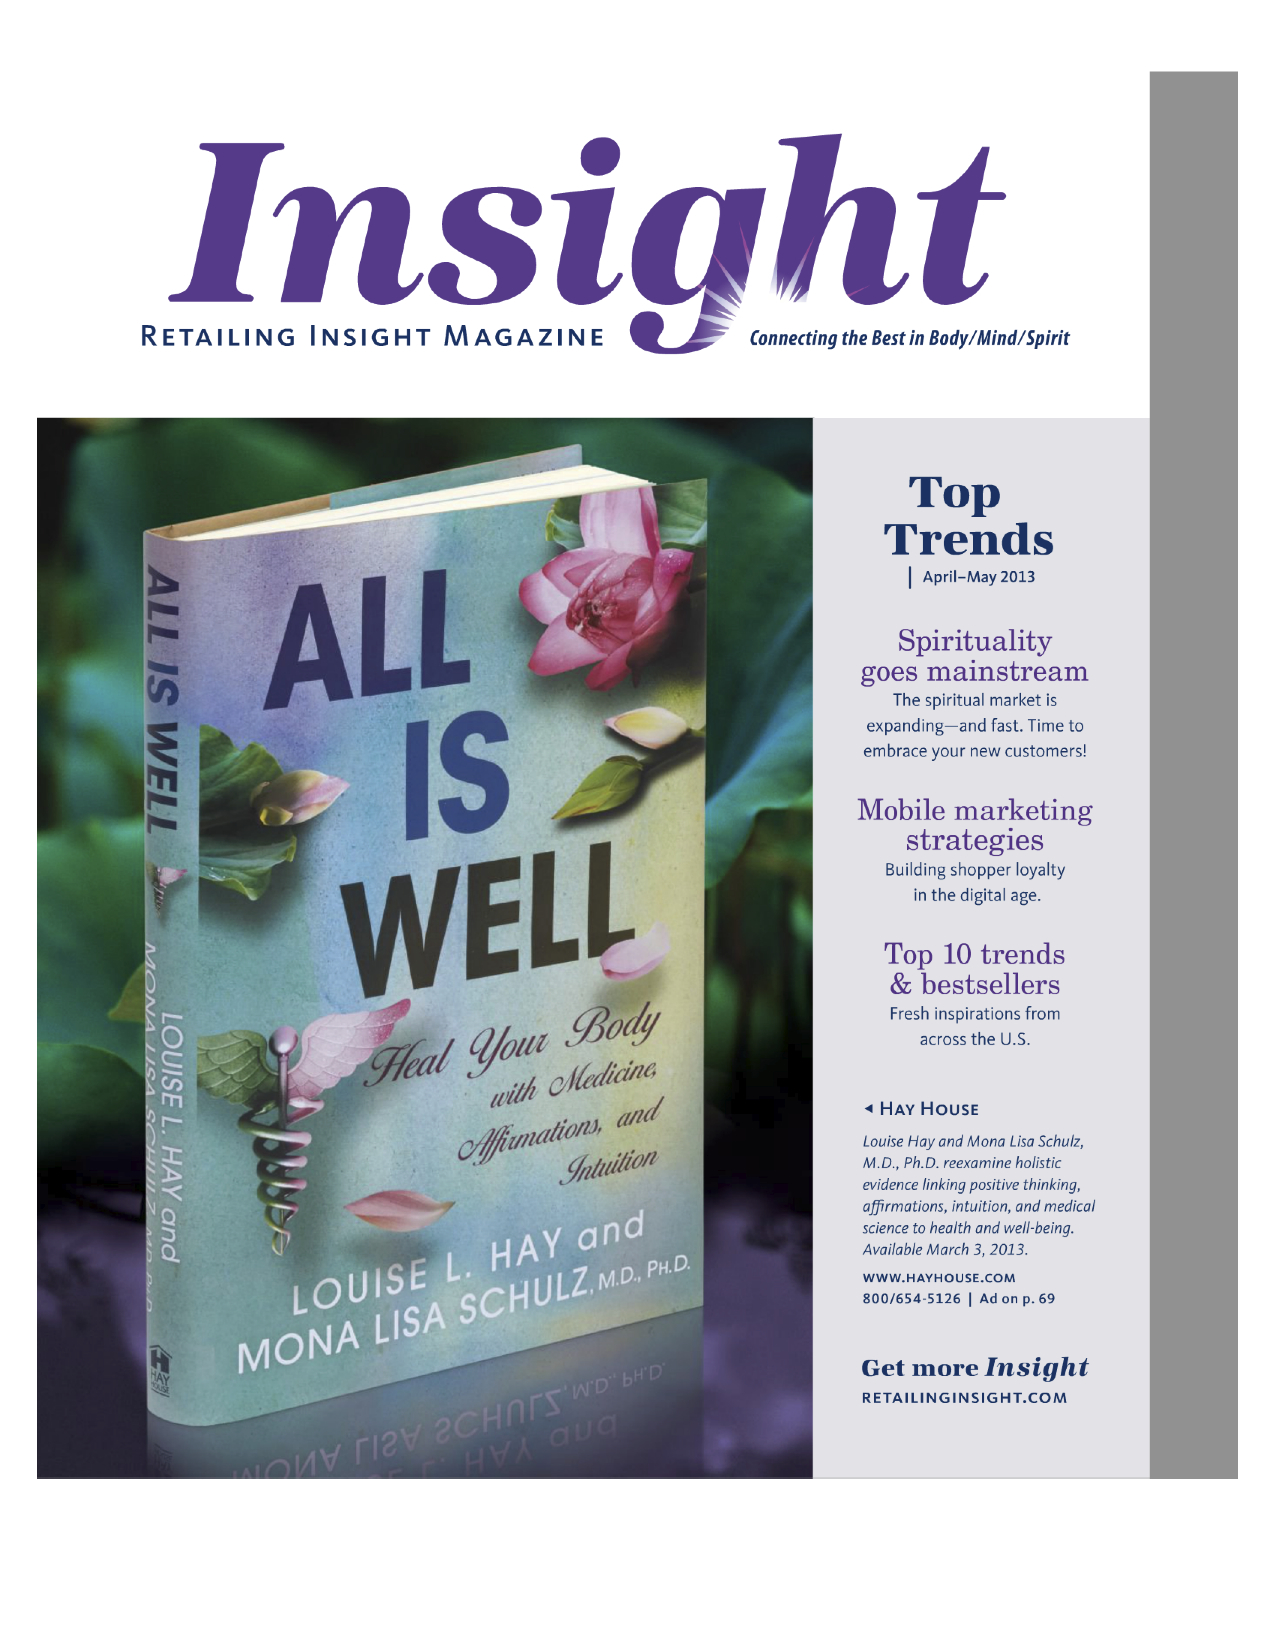 retailing-insight-cover-silver-sky-imports.jpg